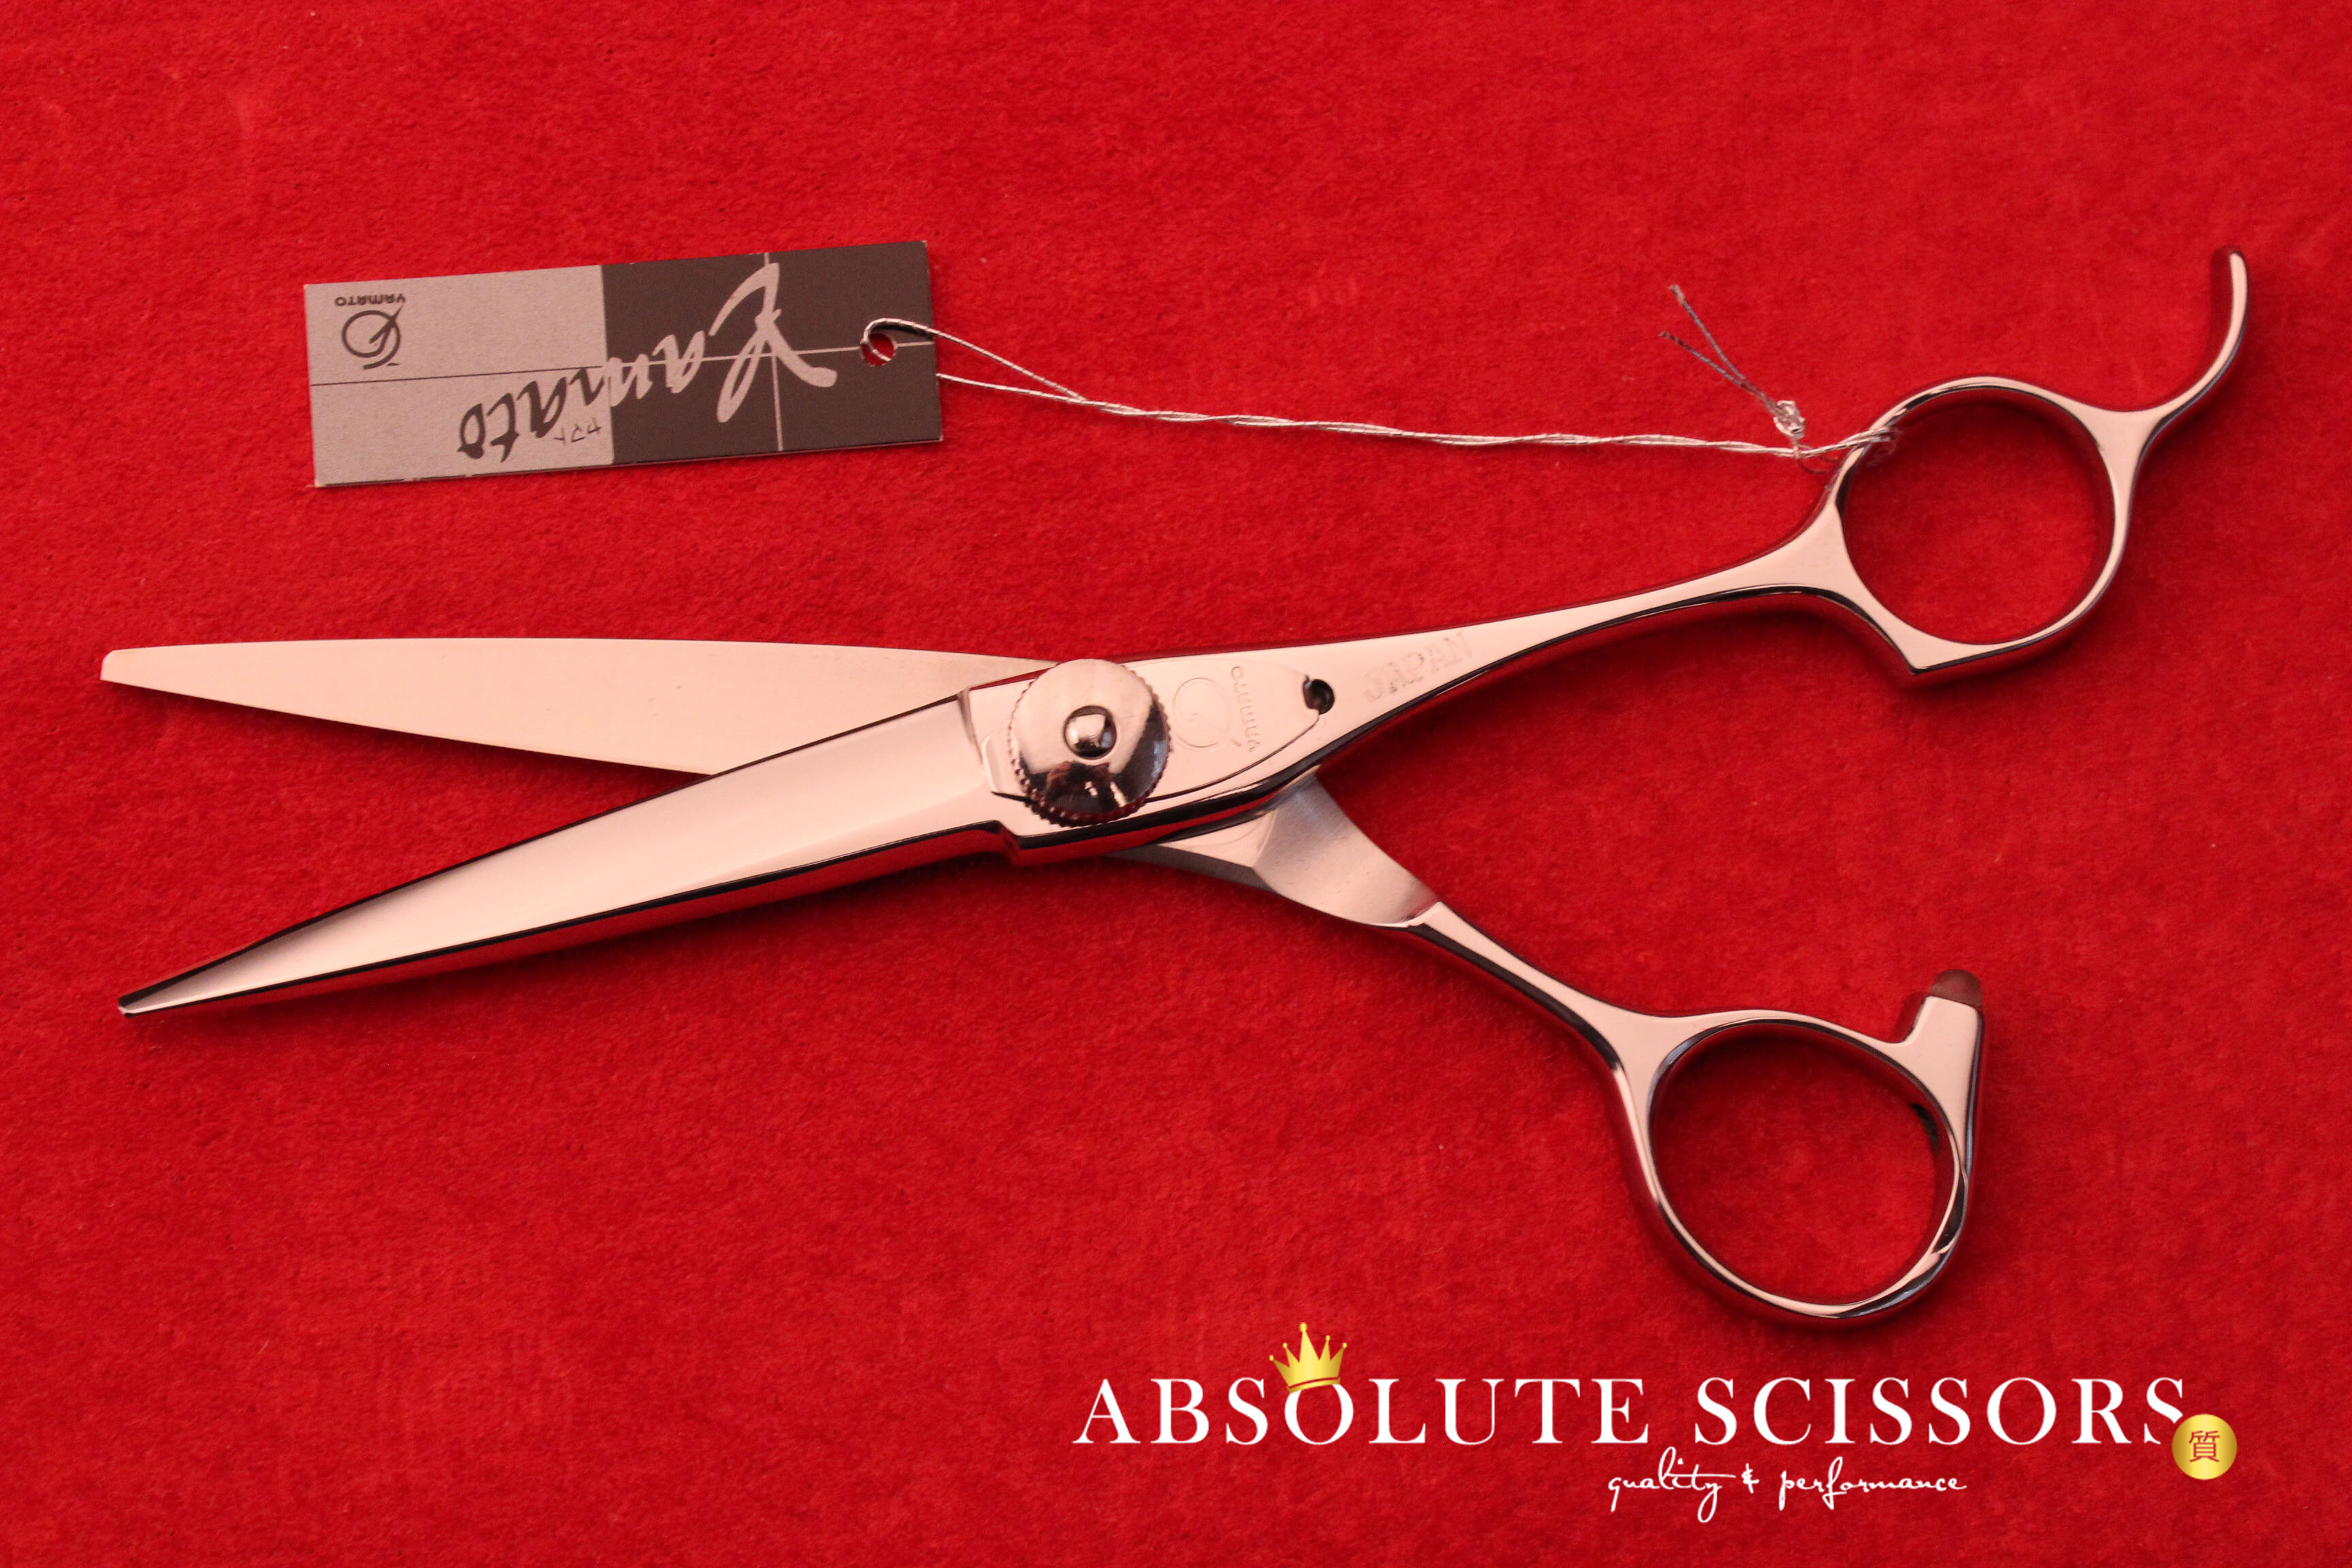 Wing N55 Yamato hair scissors size 5.5 inches